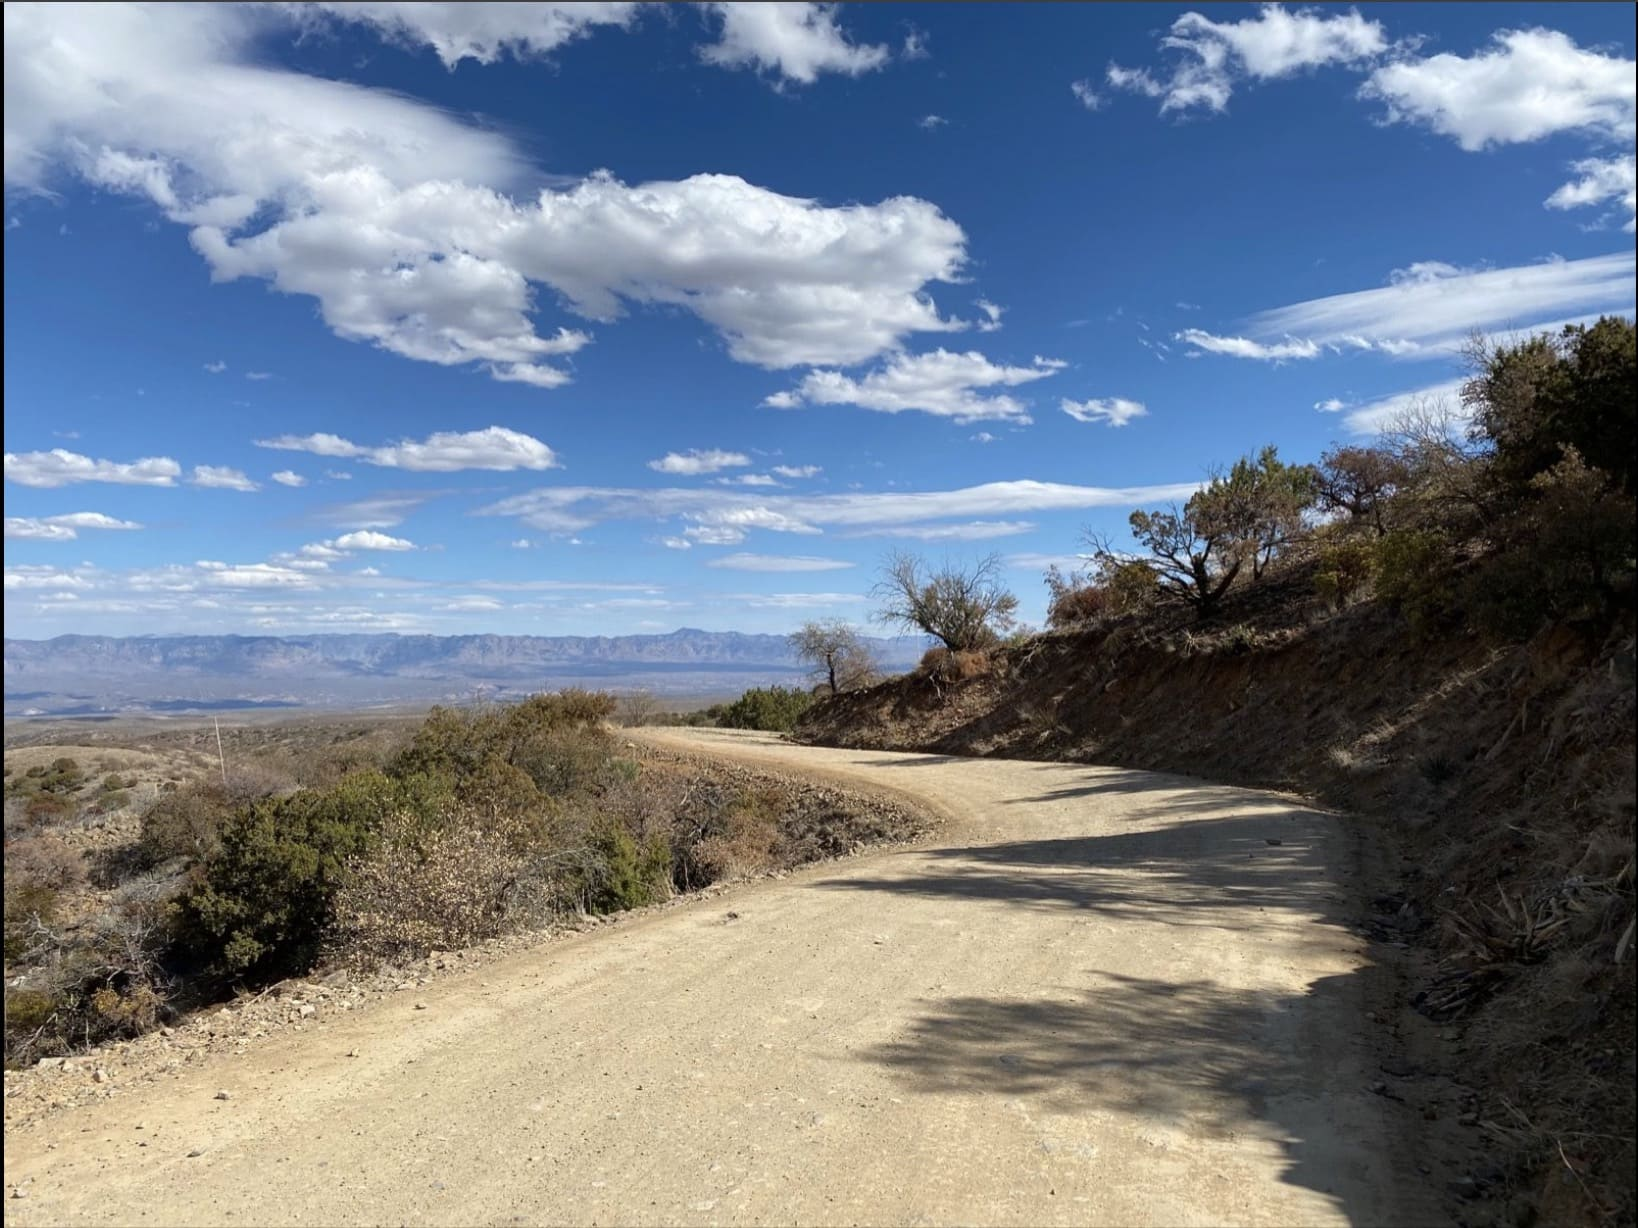 The Control Road leading to Mt Lemmon, gravel.